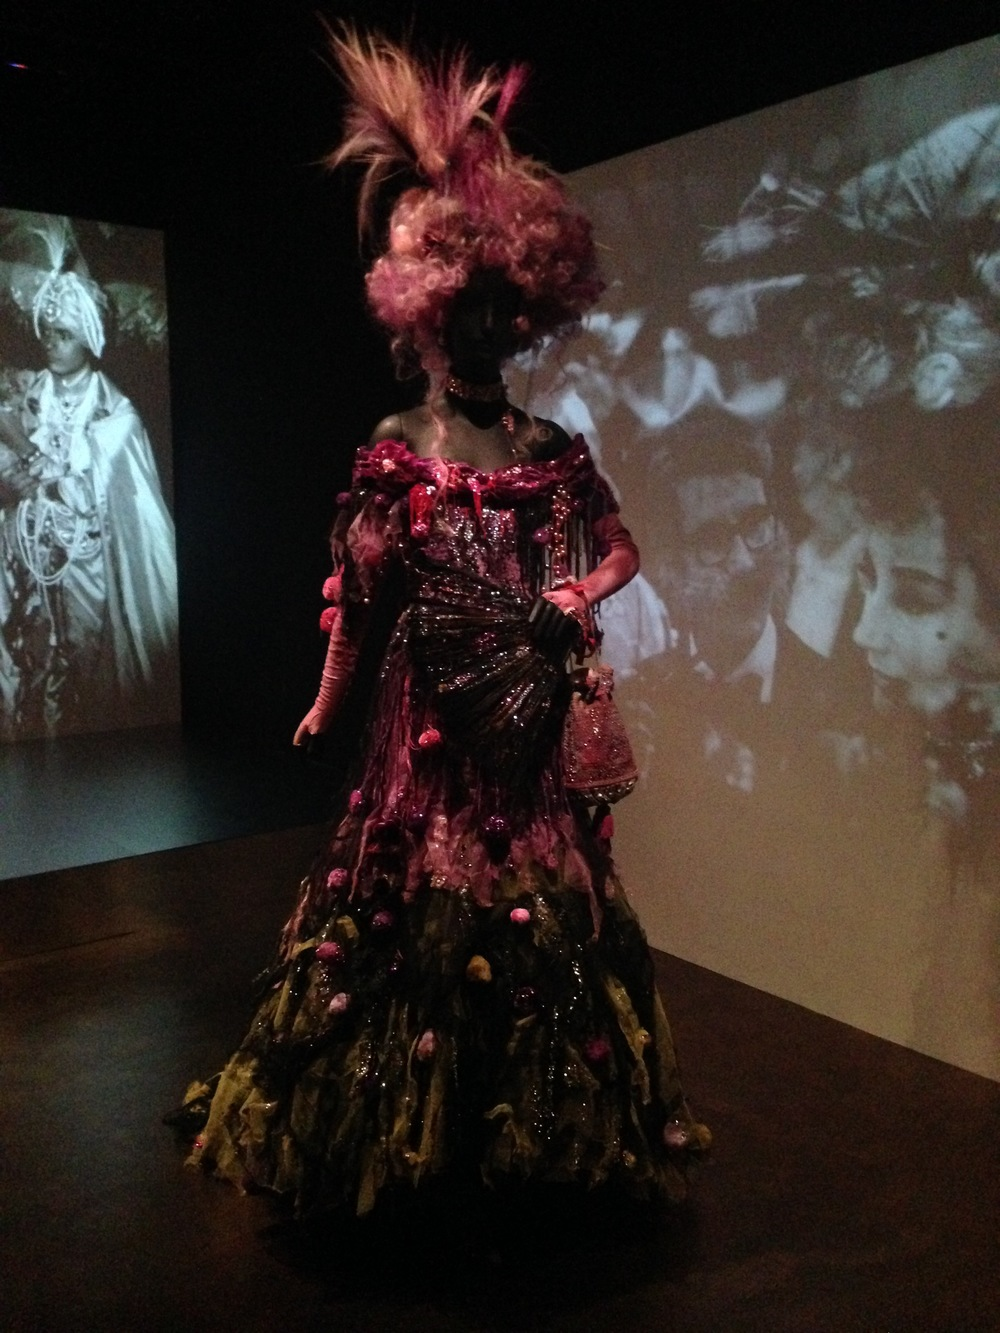 Installation view from Jacqueline De Ribes: The Art of Style, New York.